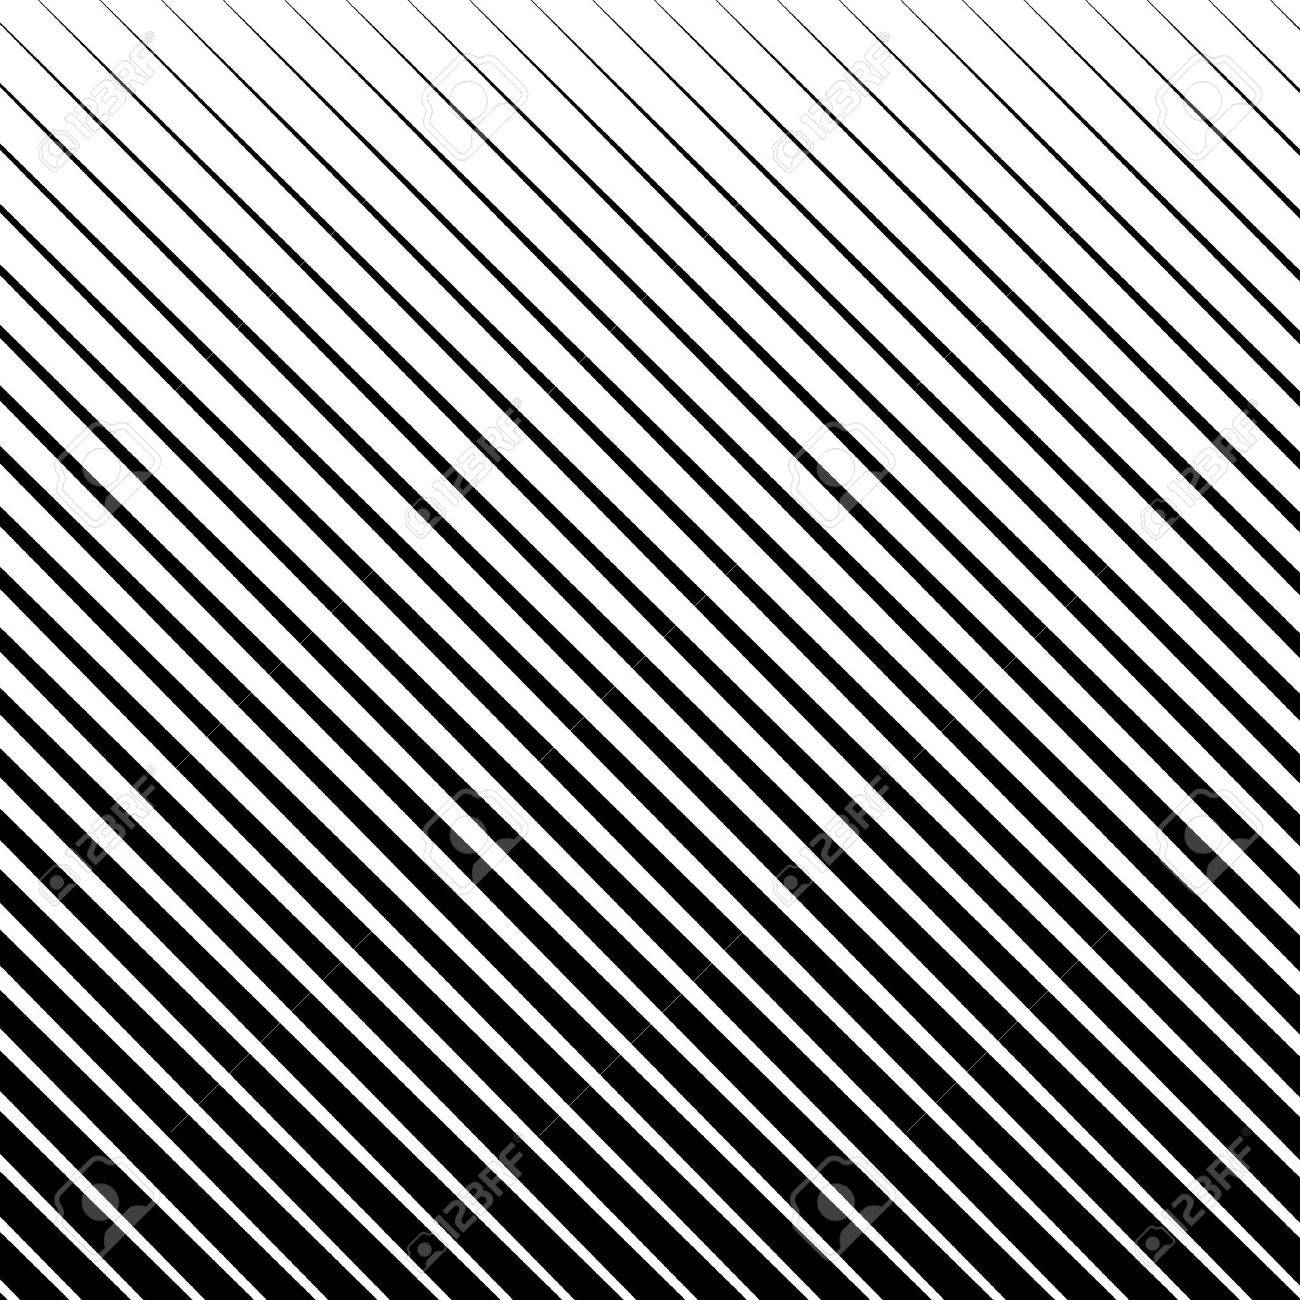 Slanting, diagonal straight lines abstract monochrome pattern, background - 56620270